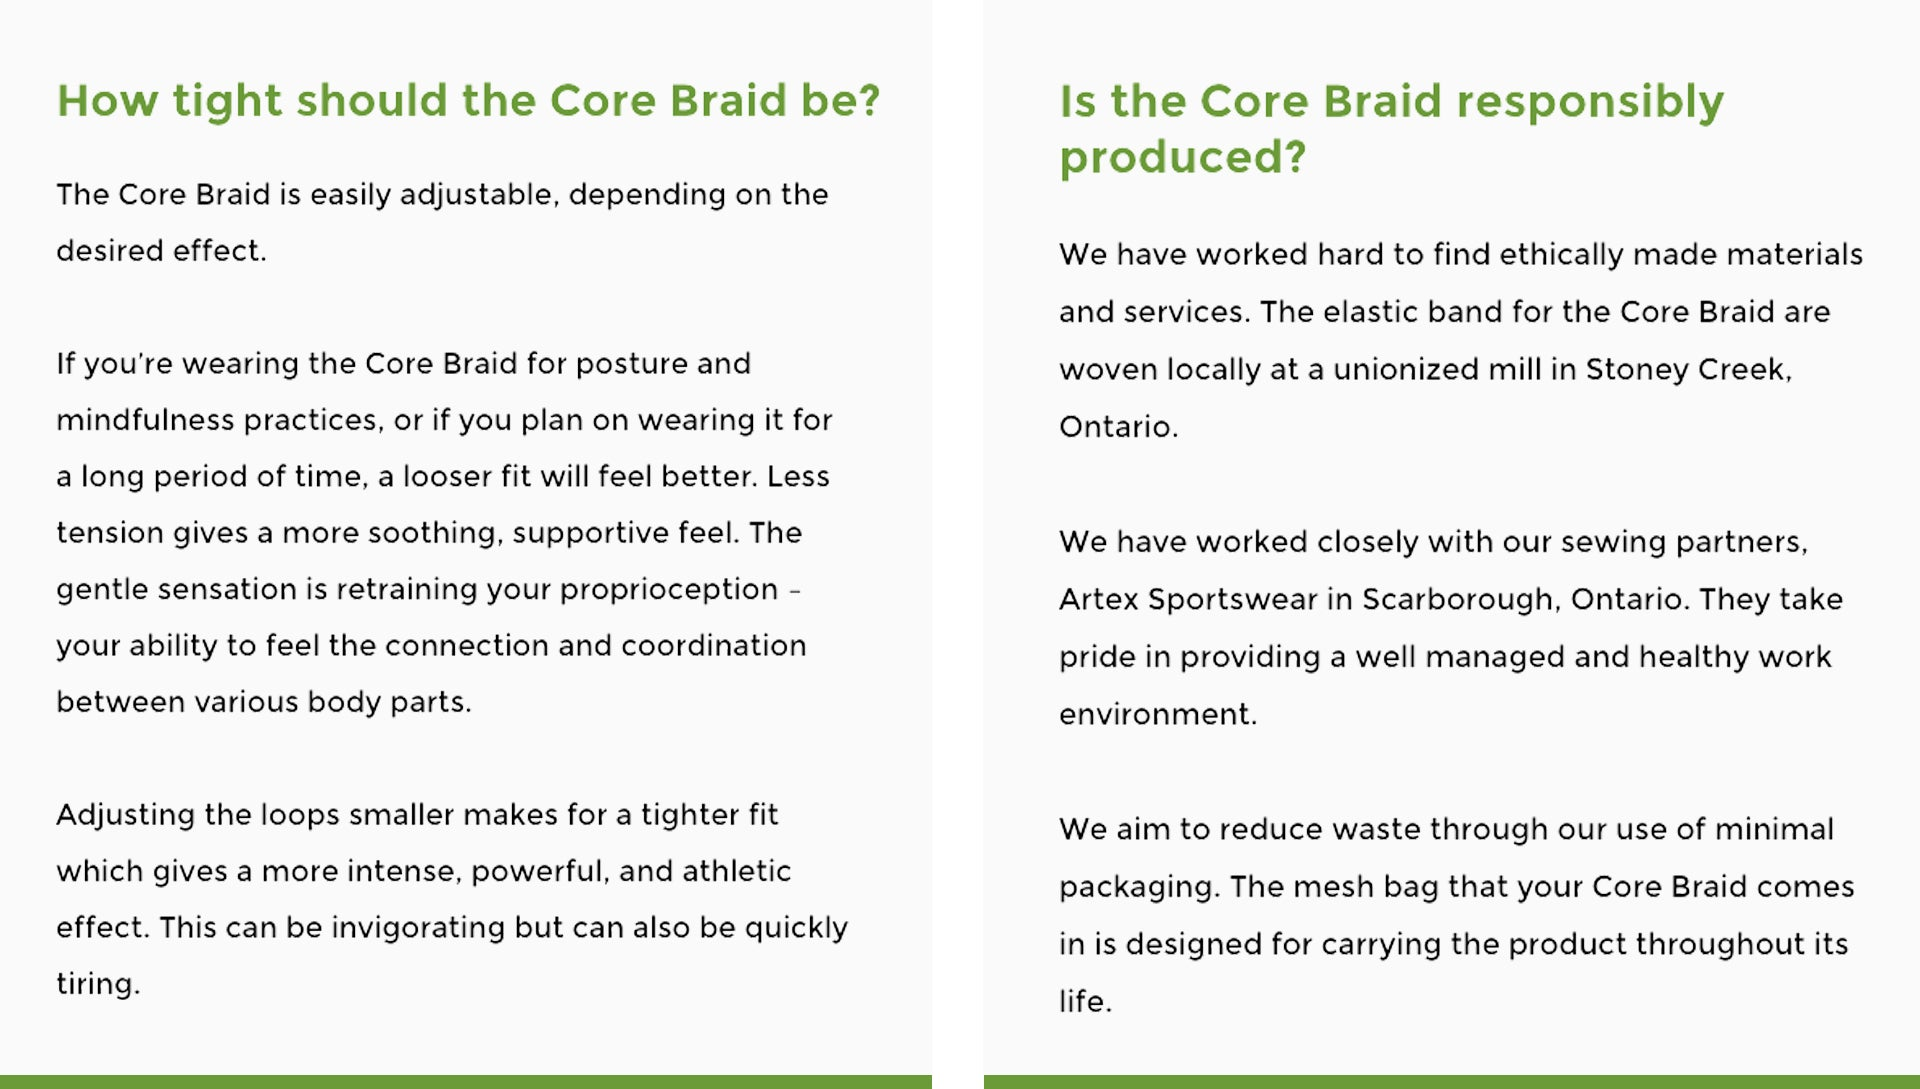 Body Braid is committed to using ethically made materials and services